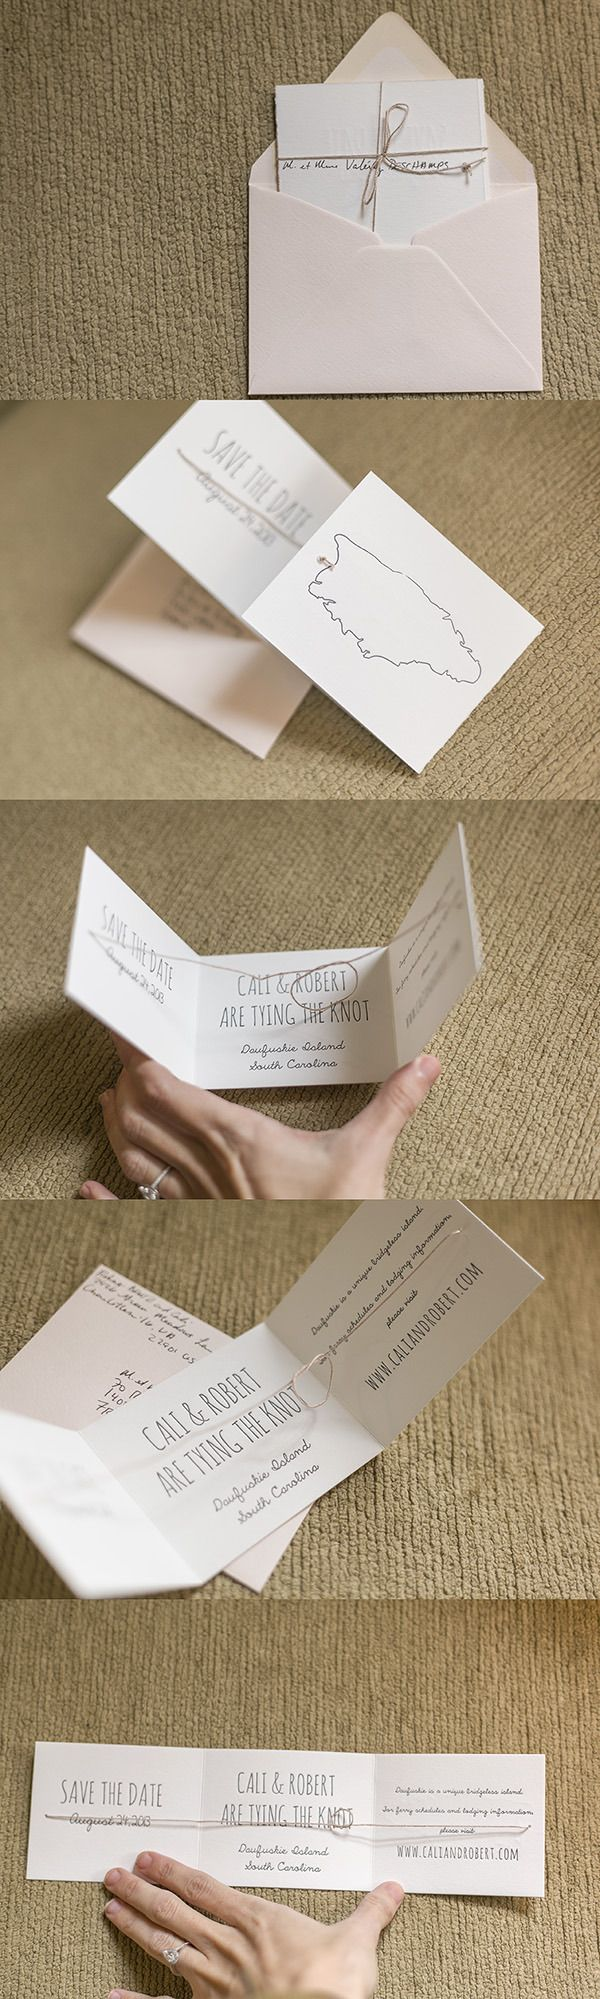 Cali and Robert Letterpress DIY Tie the Knot Save the Date